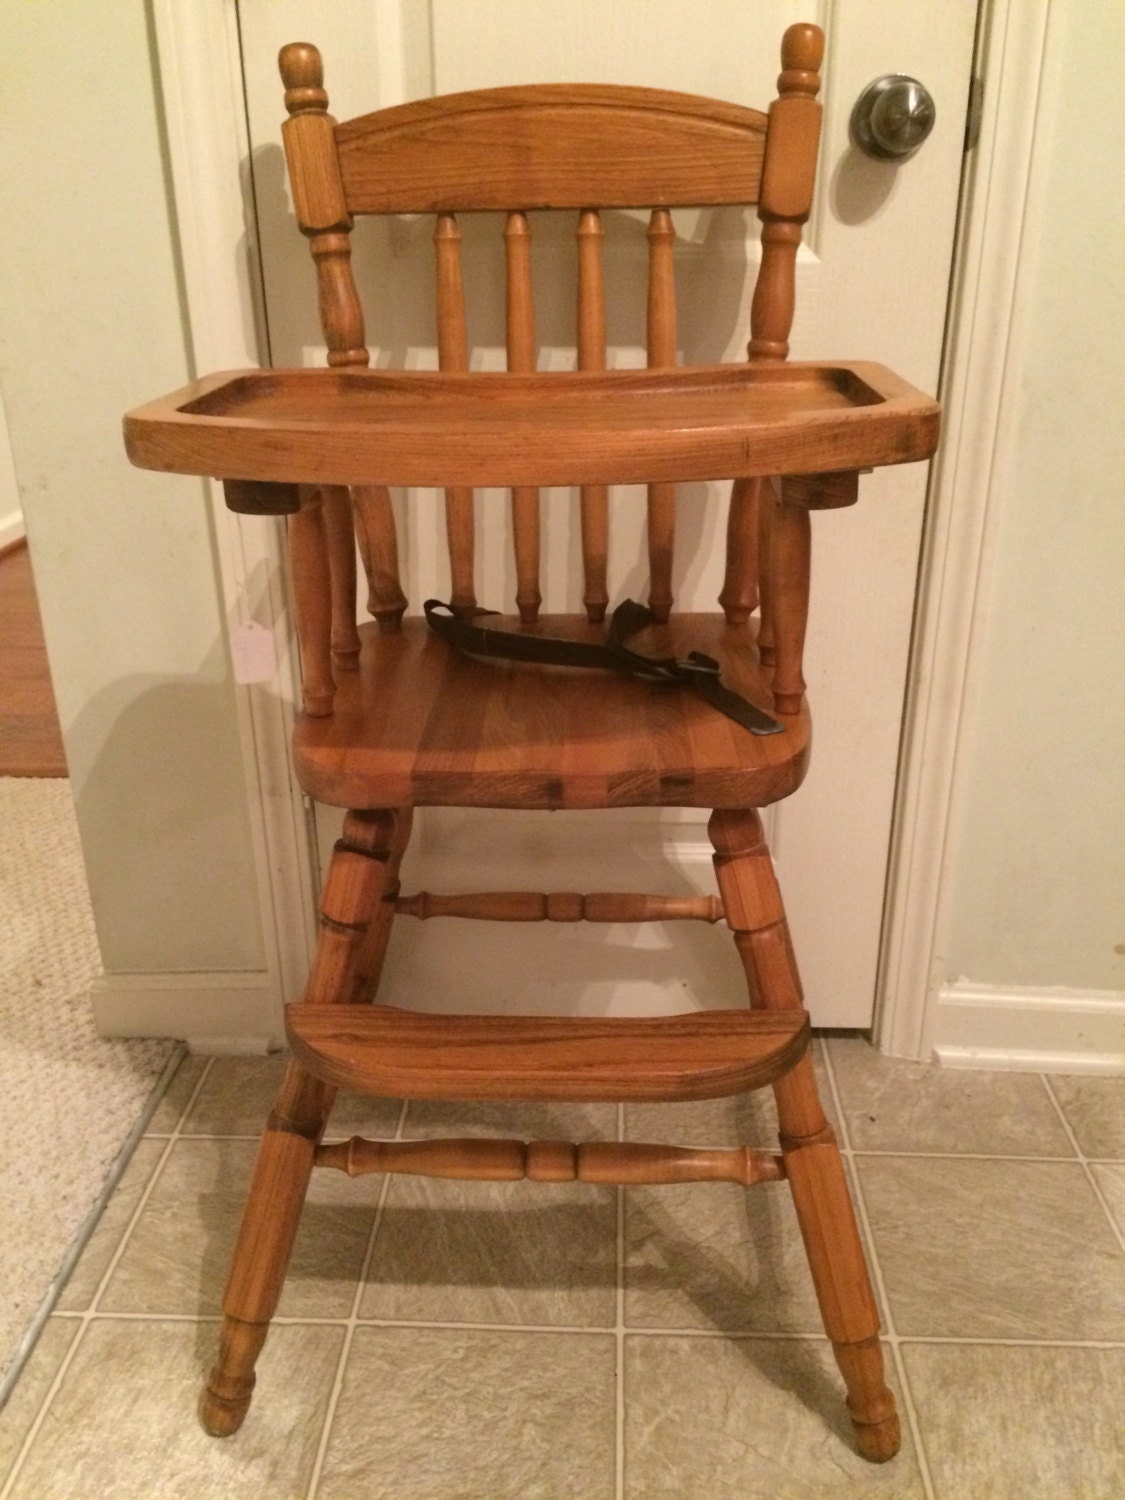 Antique Wooden Chairs ~ Vintage wooden high chair jenny lind antique by thekristkorner